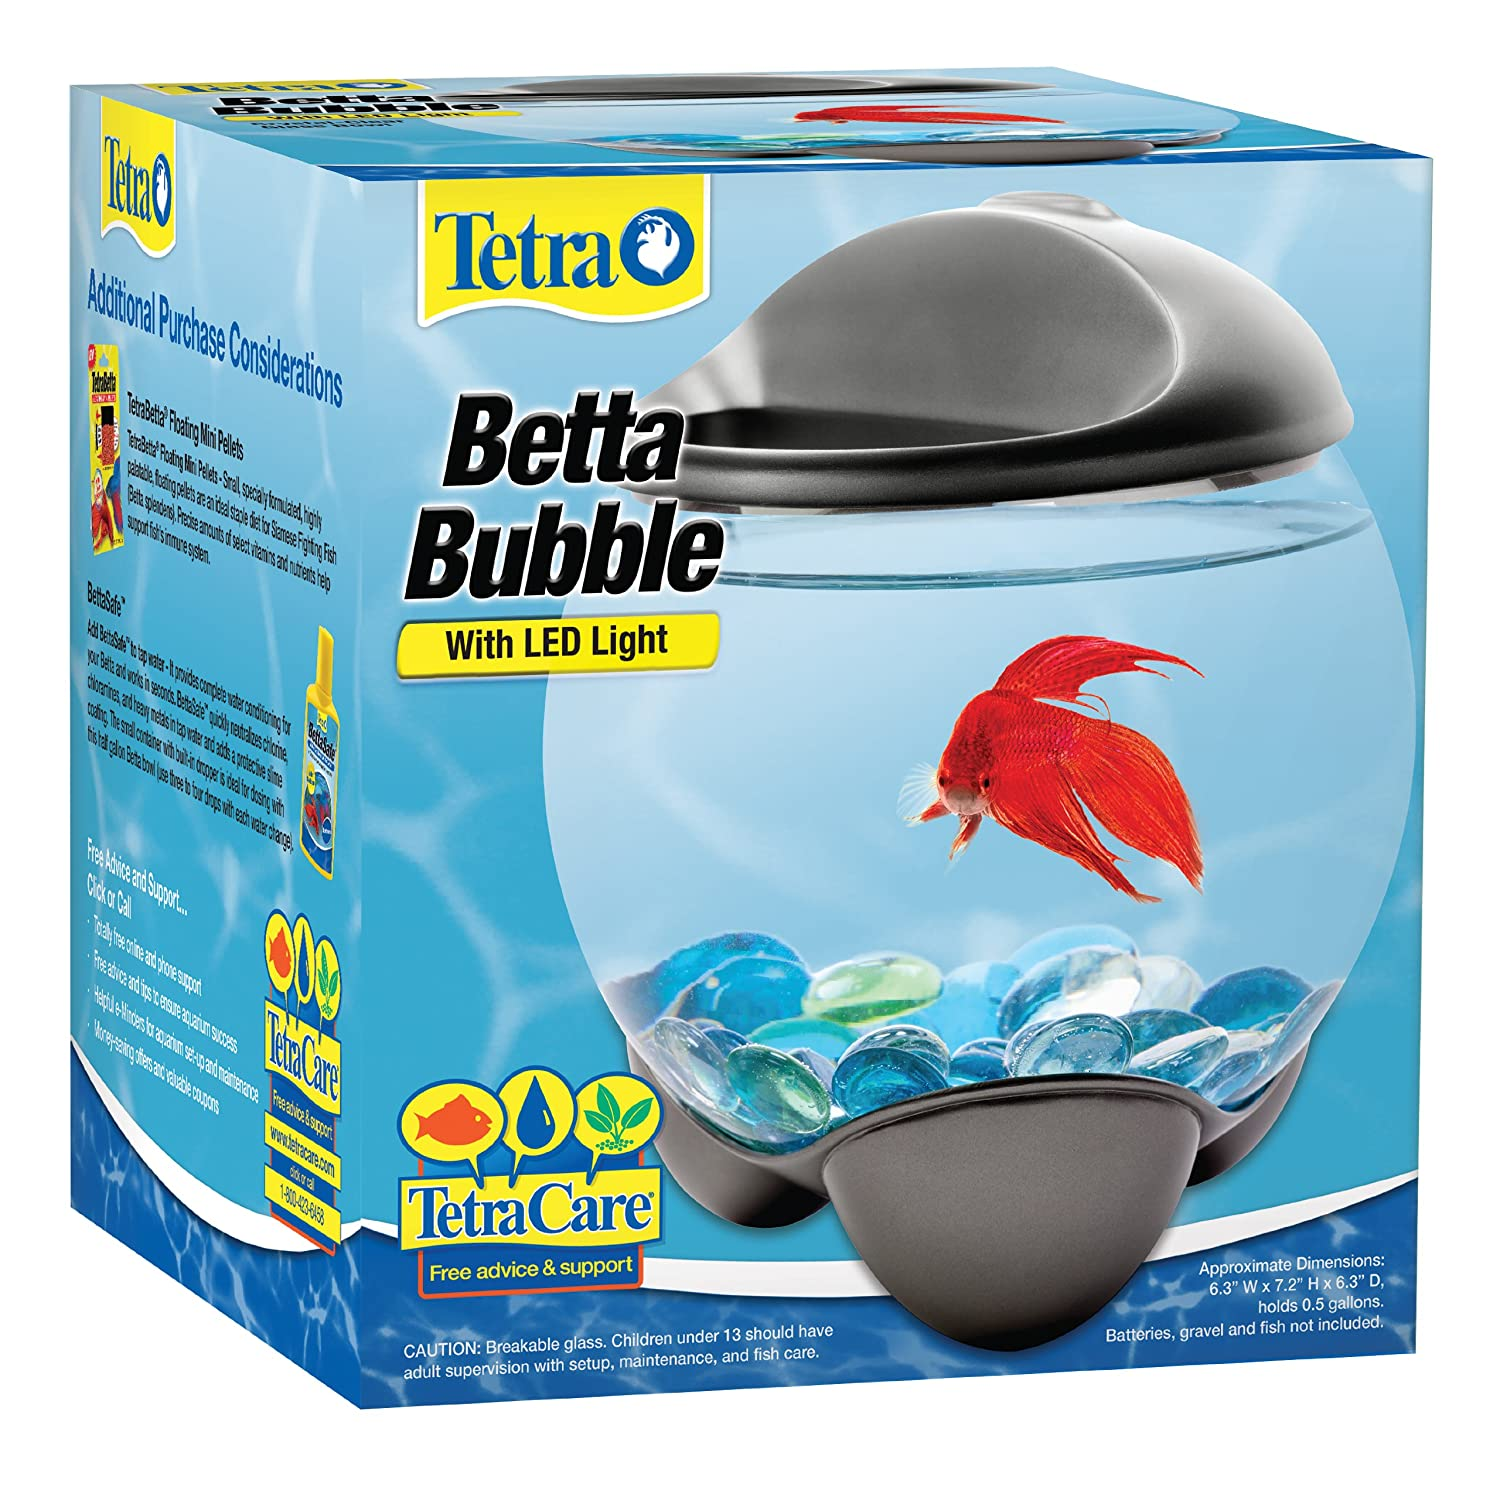 91PTh9nR6pL._SL1500_ amazon com tetra 29263 betta bubble betta bowl with led light  at creativeand.co